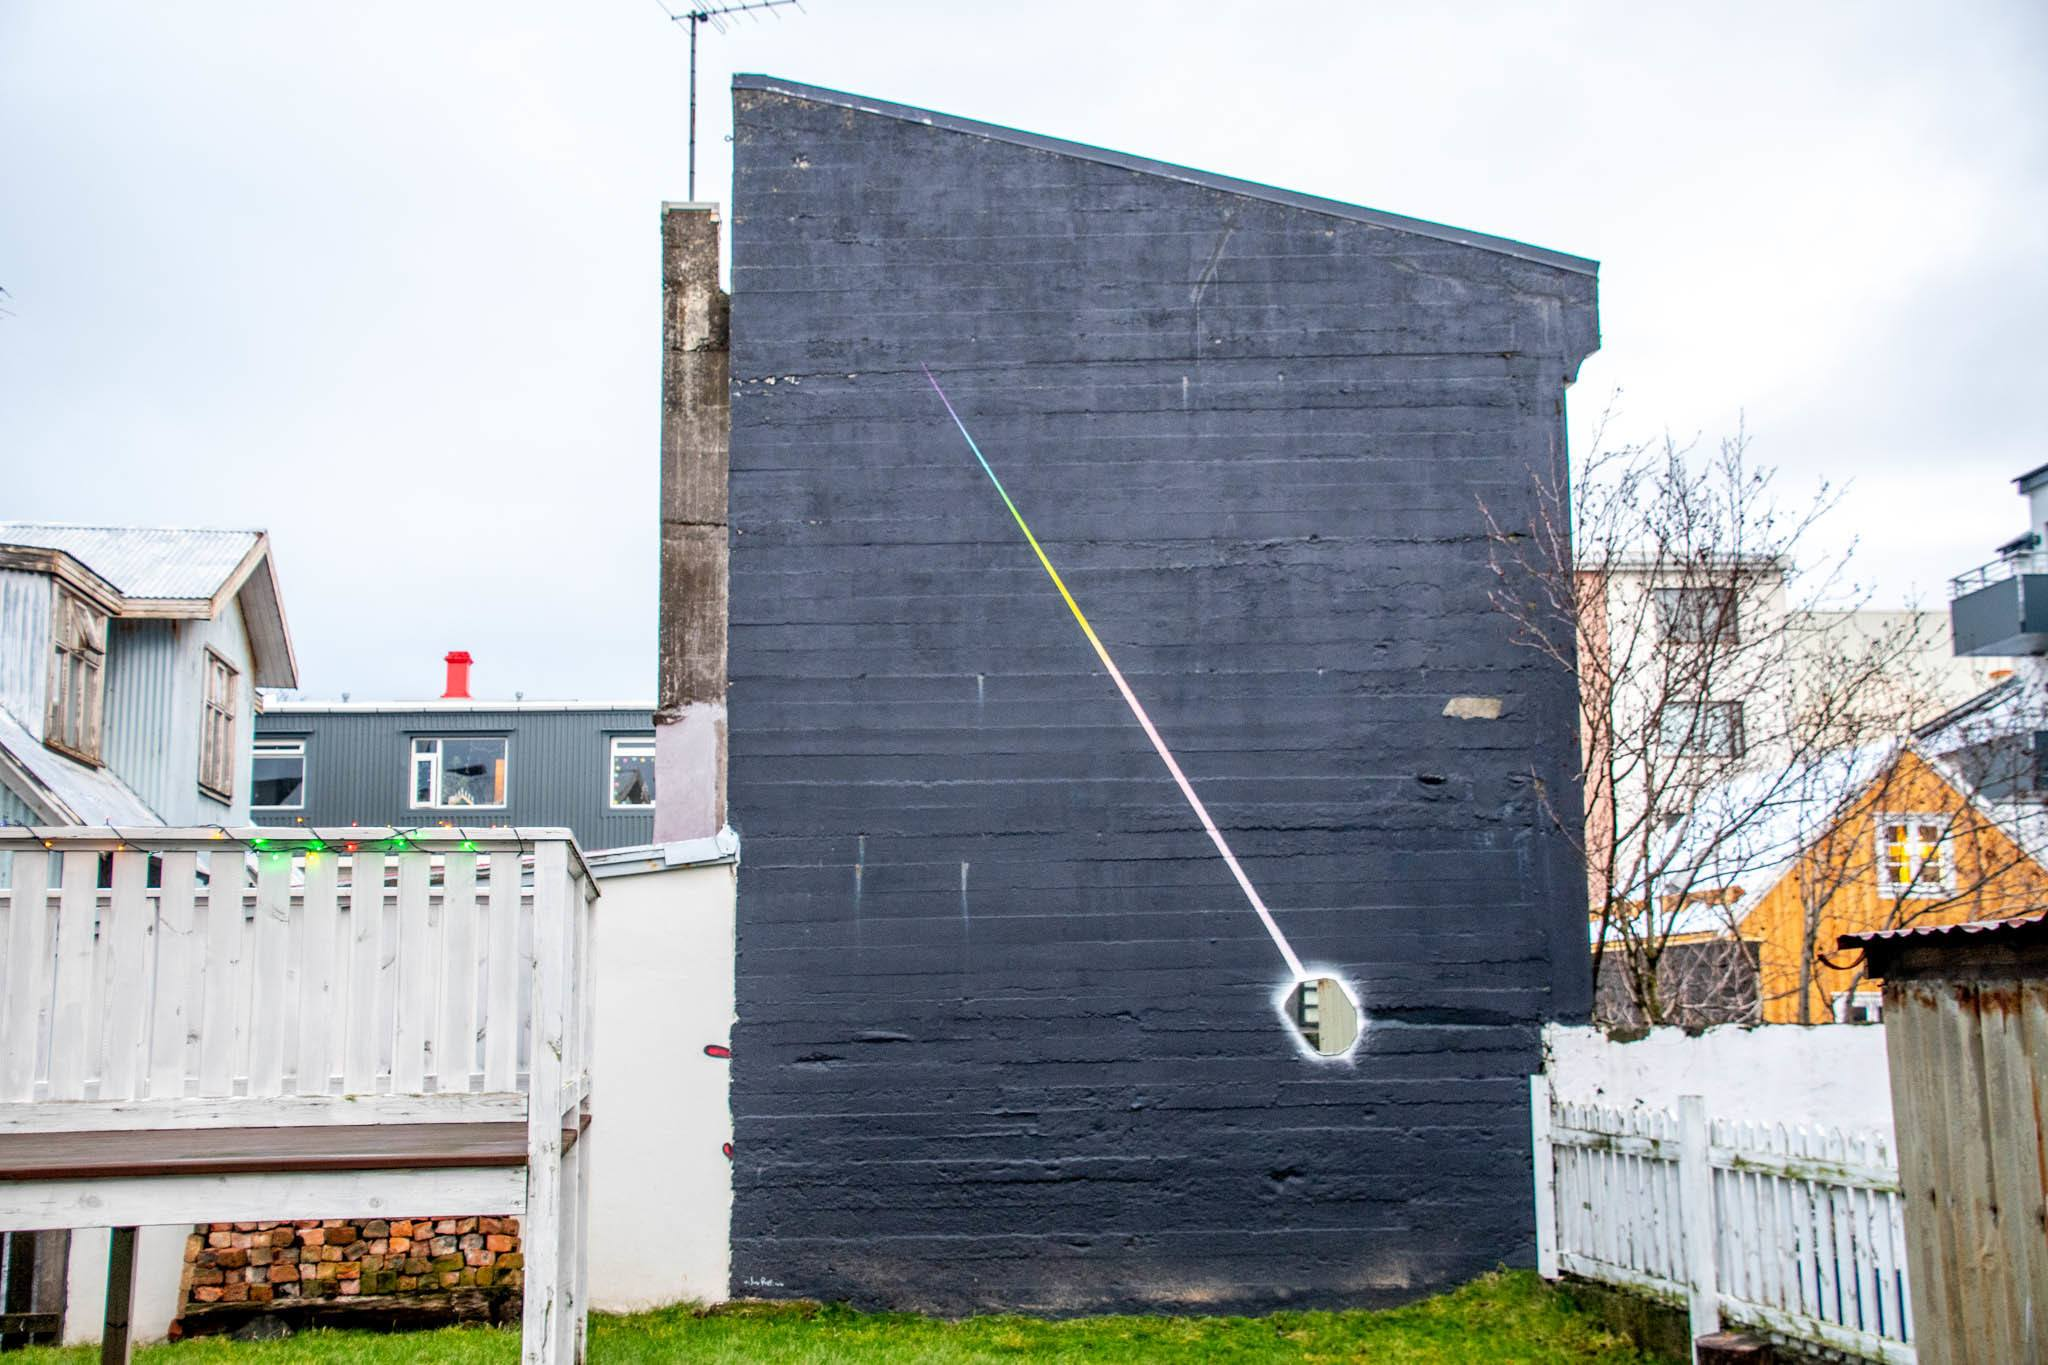 Mixed-media murals are popping up in the capital